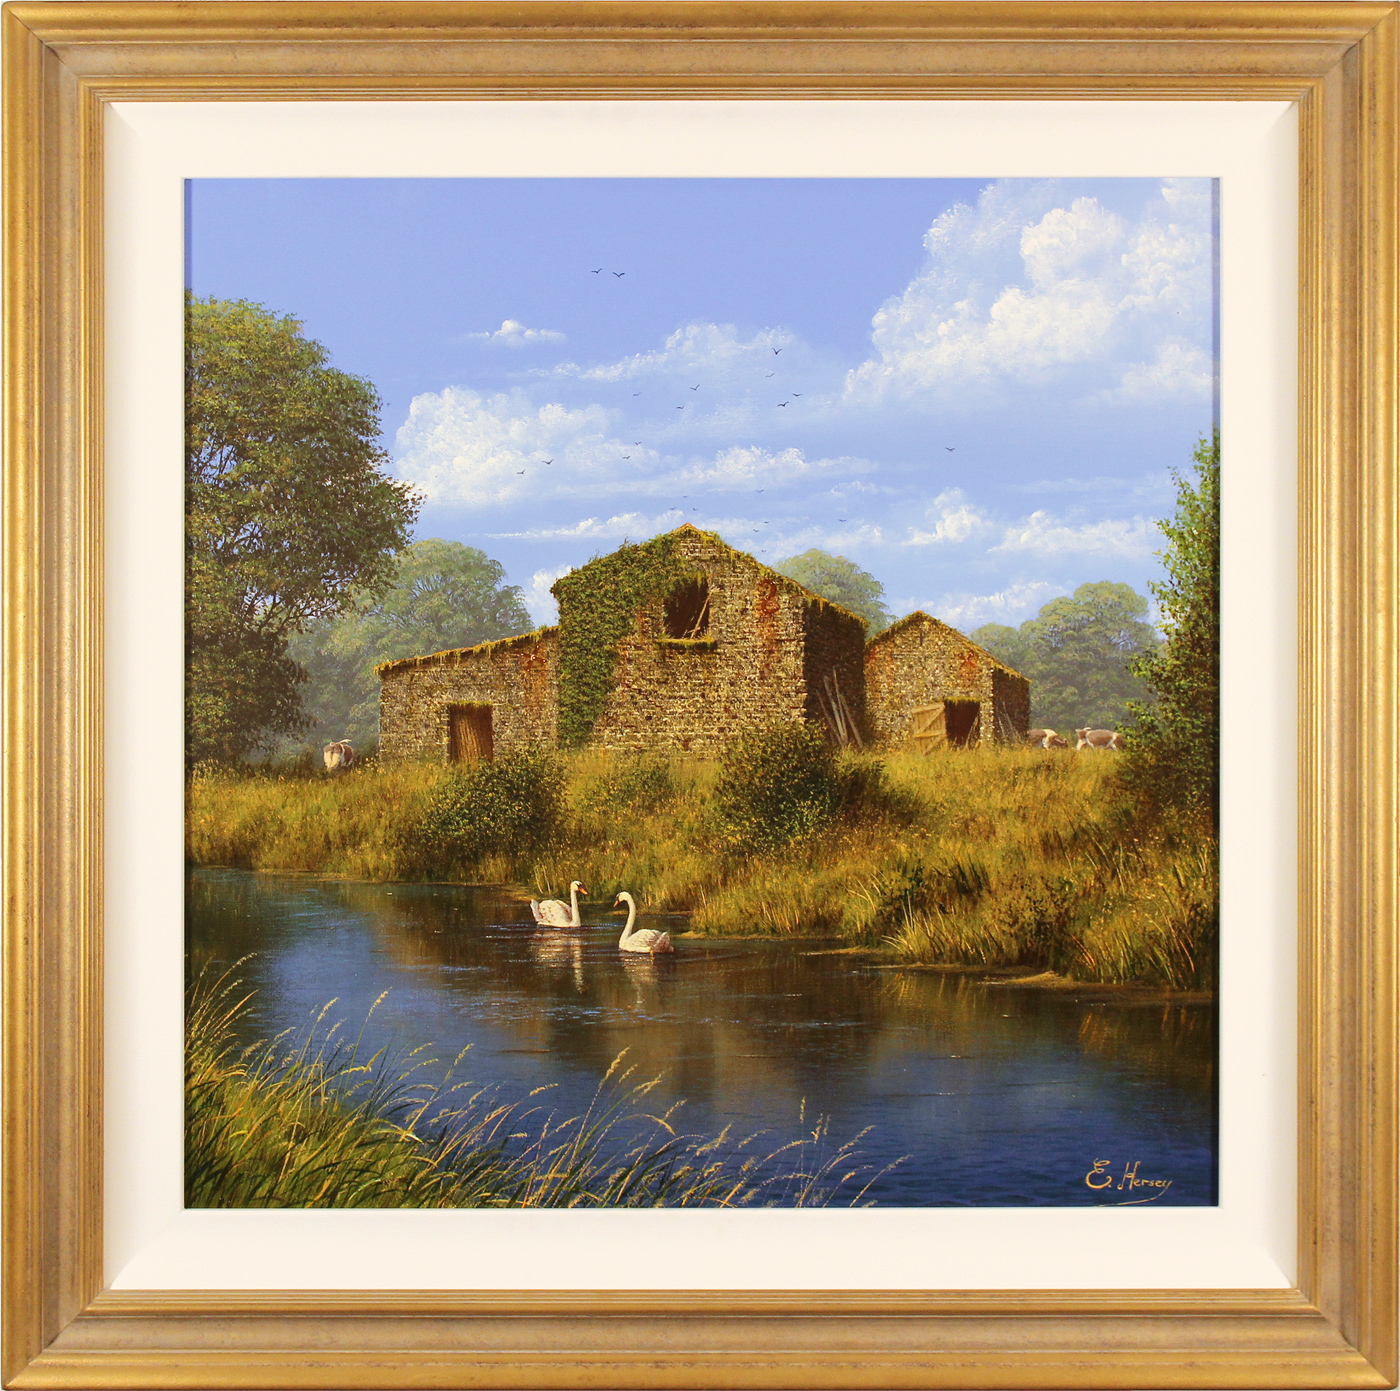 Edward Hersey, Original oil painting on canvas, Summer Graces Click to enlarge